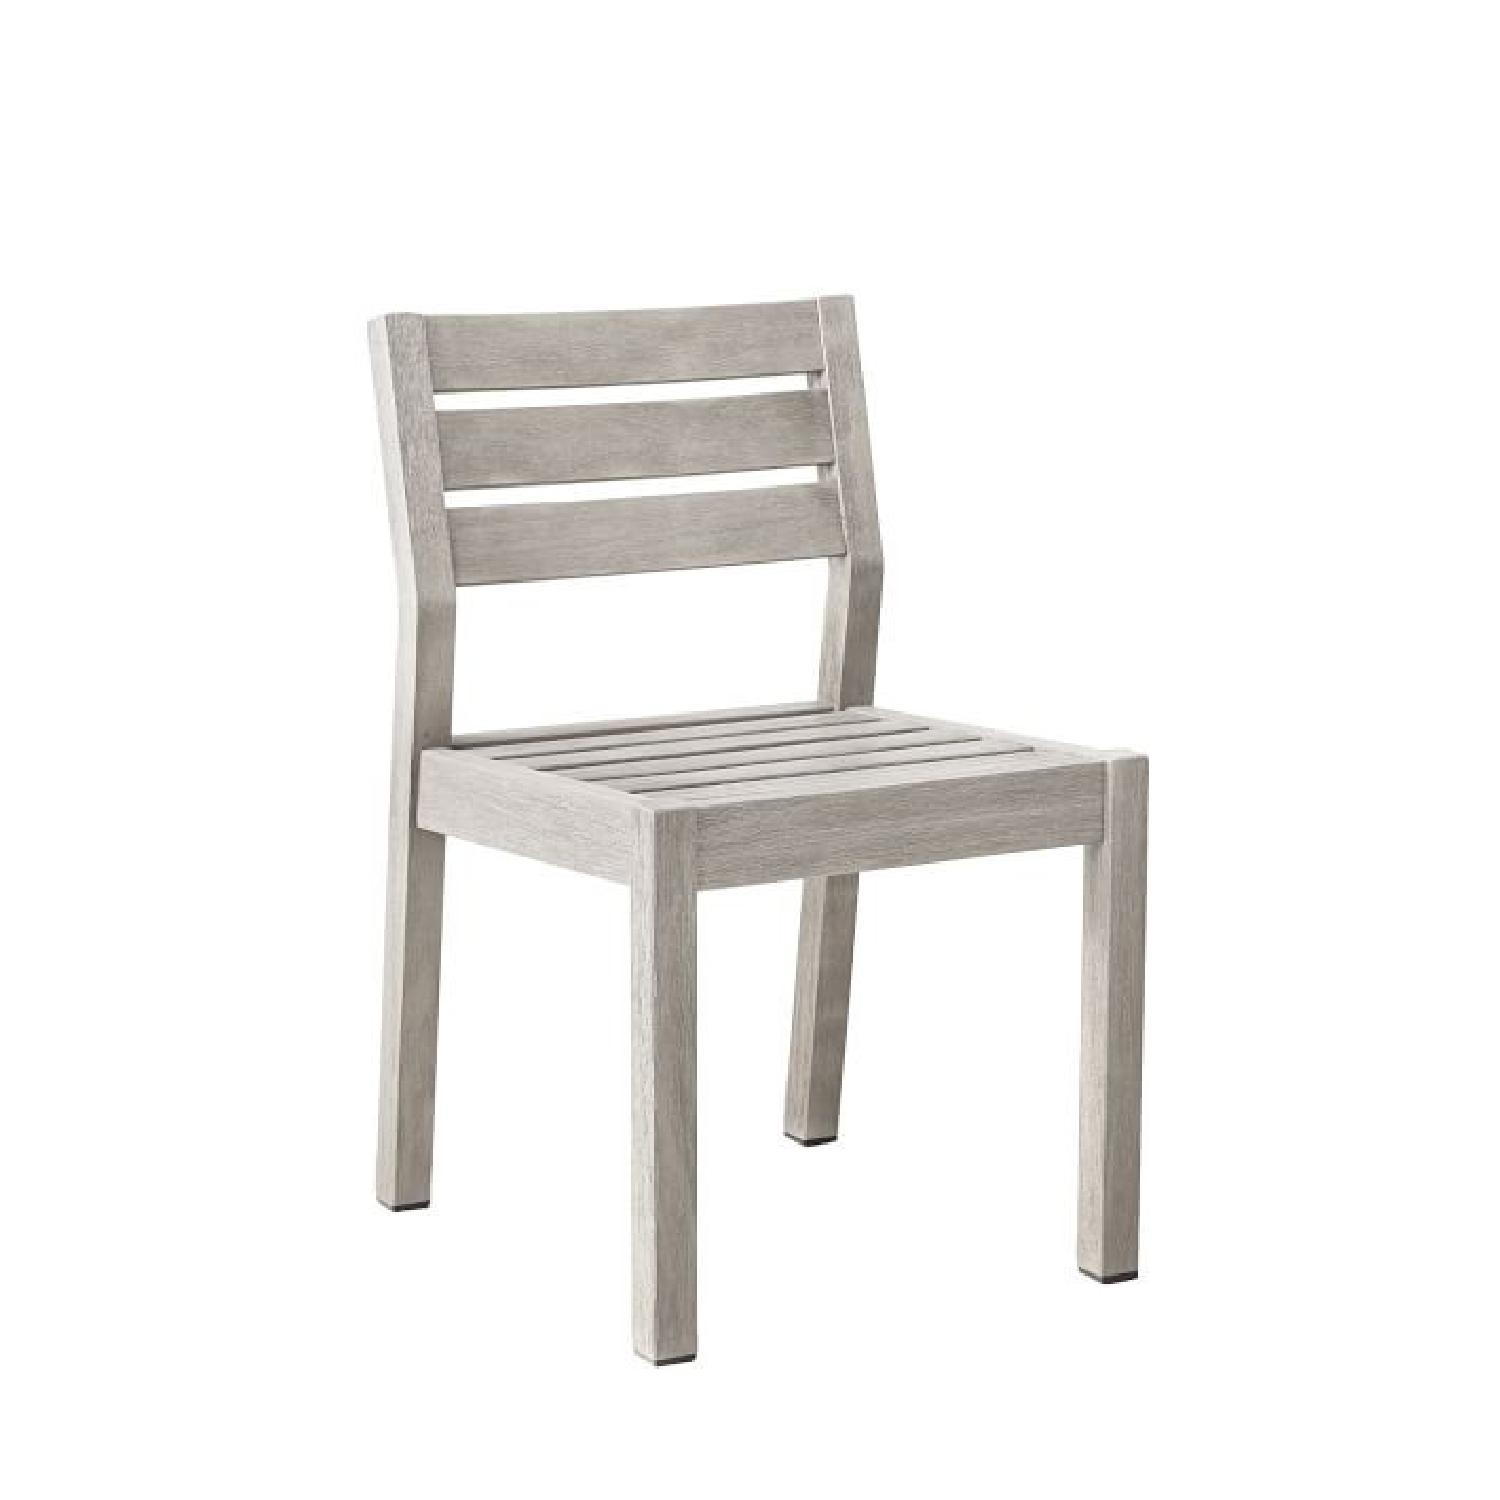 West Elm Portside Dining Chair in Weathered Gray - image-0